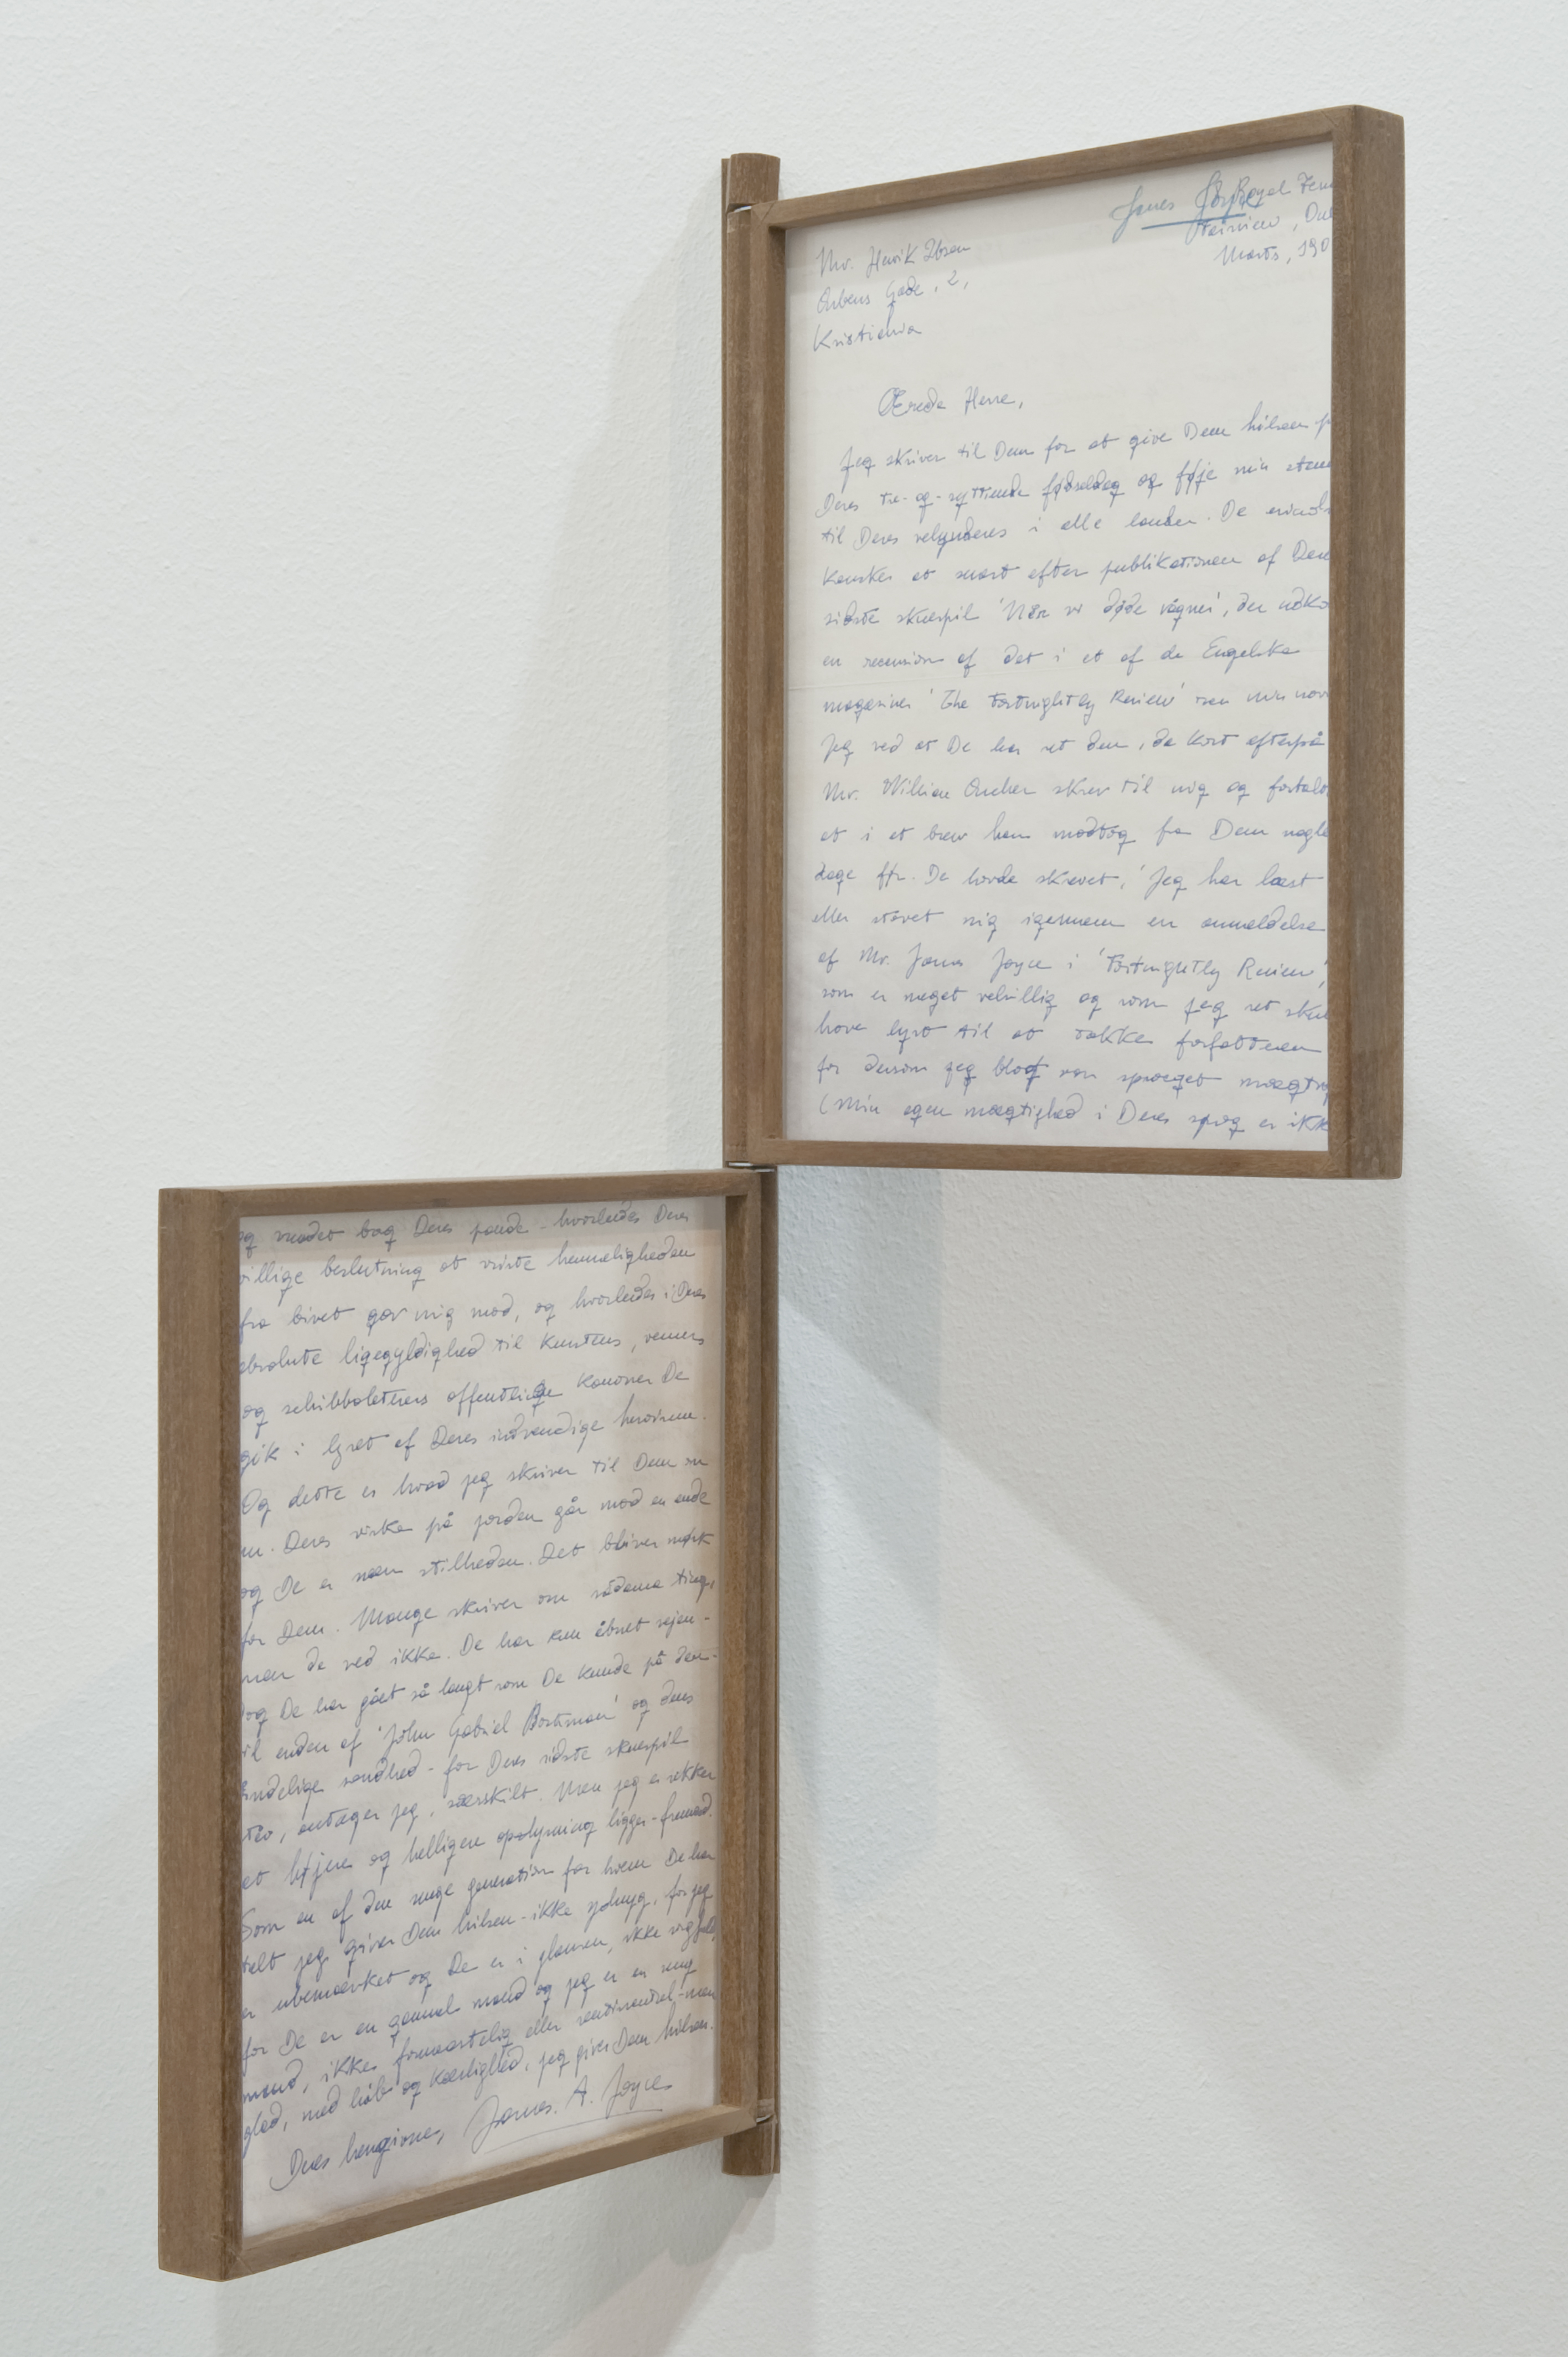 Attempt to Forge a Letter from Joyce to Ibsen in 1901 Nº 11, 2015 |  | ProjecteSD